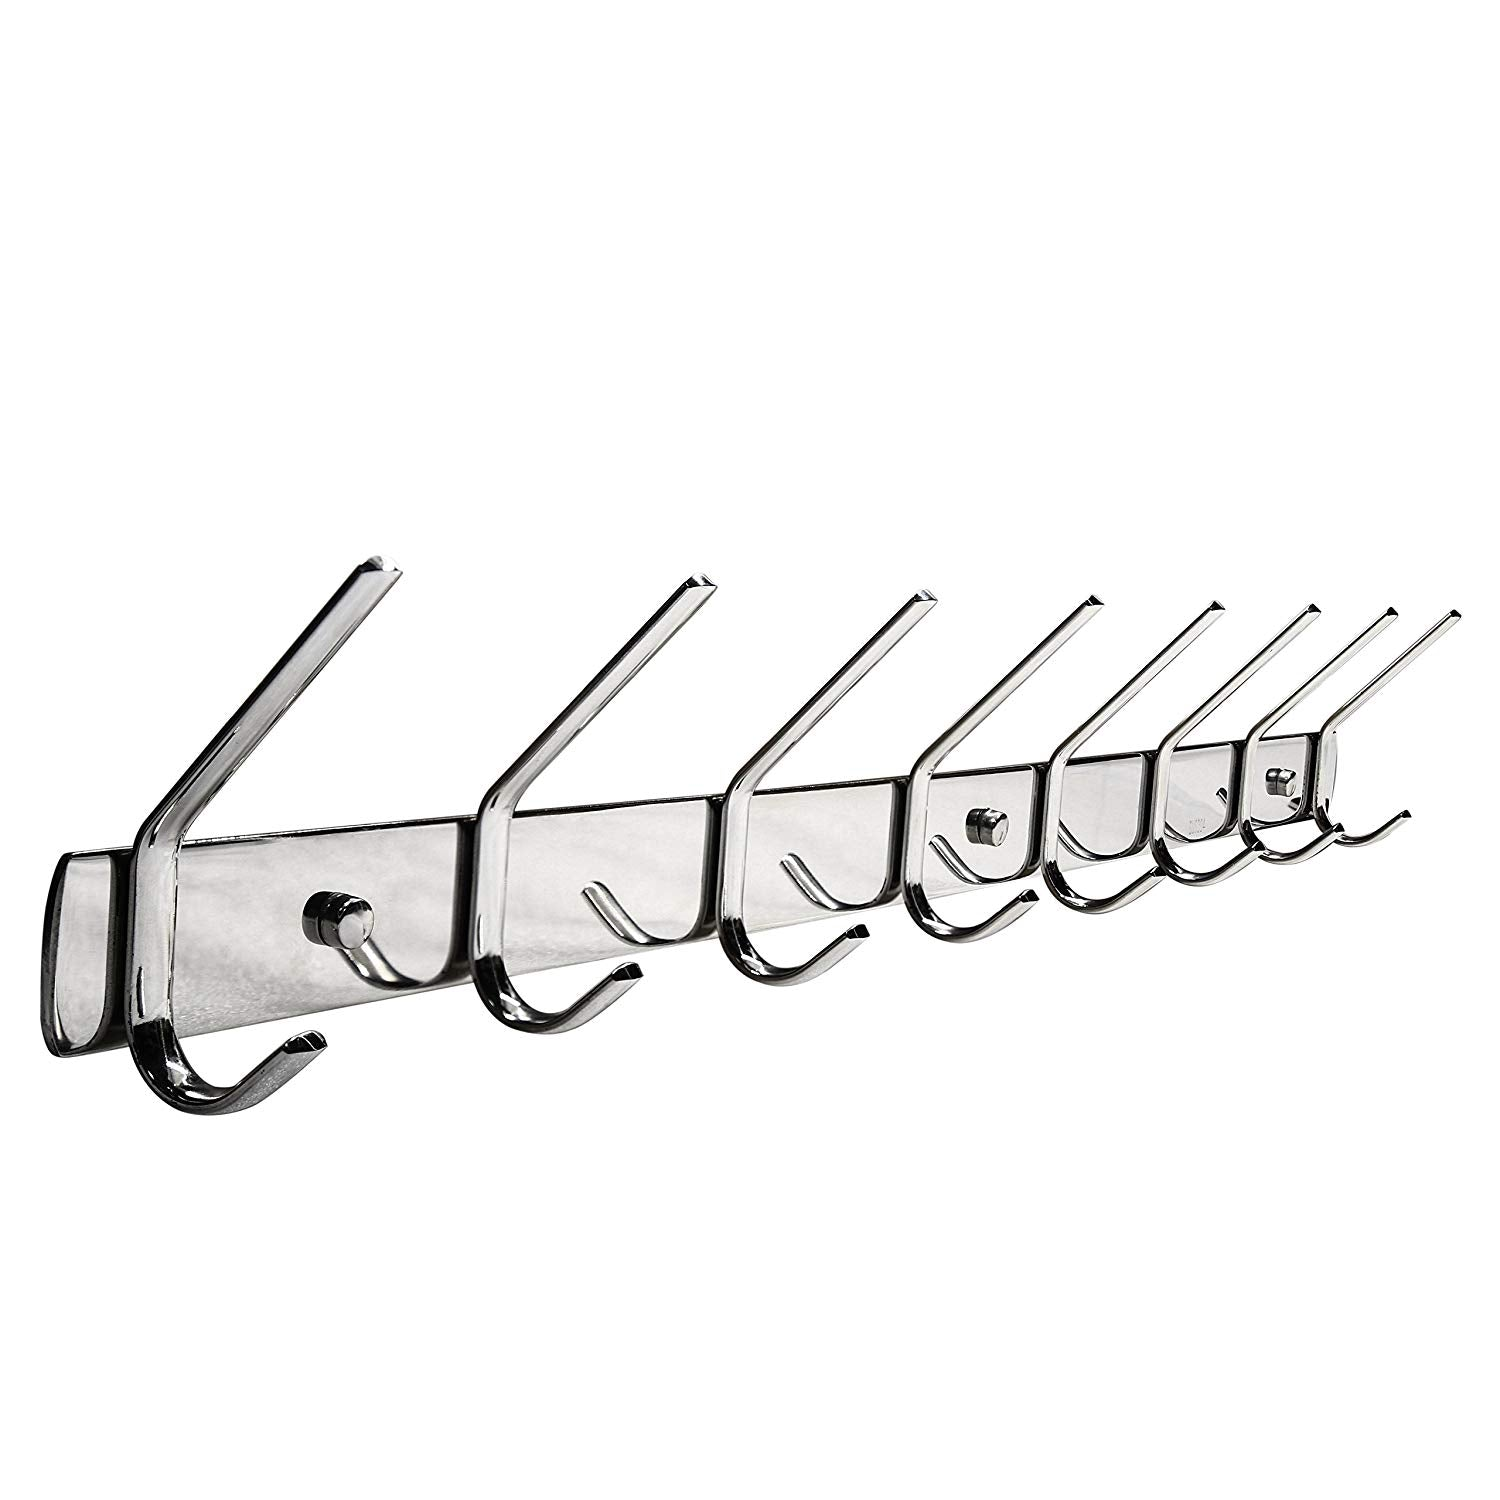 Hat Coat Hooks 2 Set, WEBI SUS304 Modern Heavy Duty 3-Hook Robe Bath Kitchen Towel Utensil Utility Garment Rack Hanger Rail Holder, Bedroom Entryway Garage Bathroom Home Organization Storage, Polished